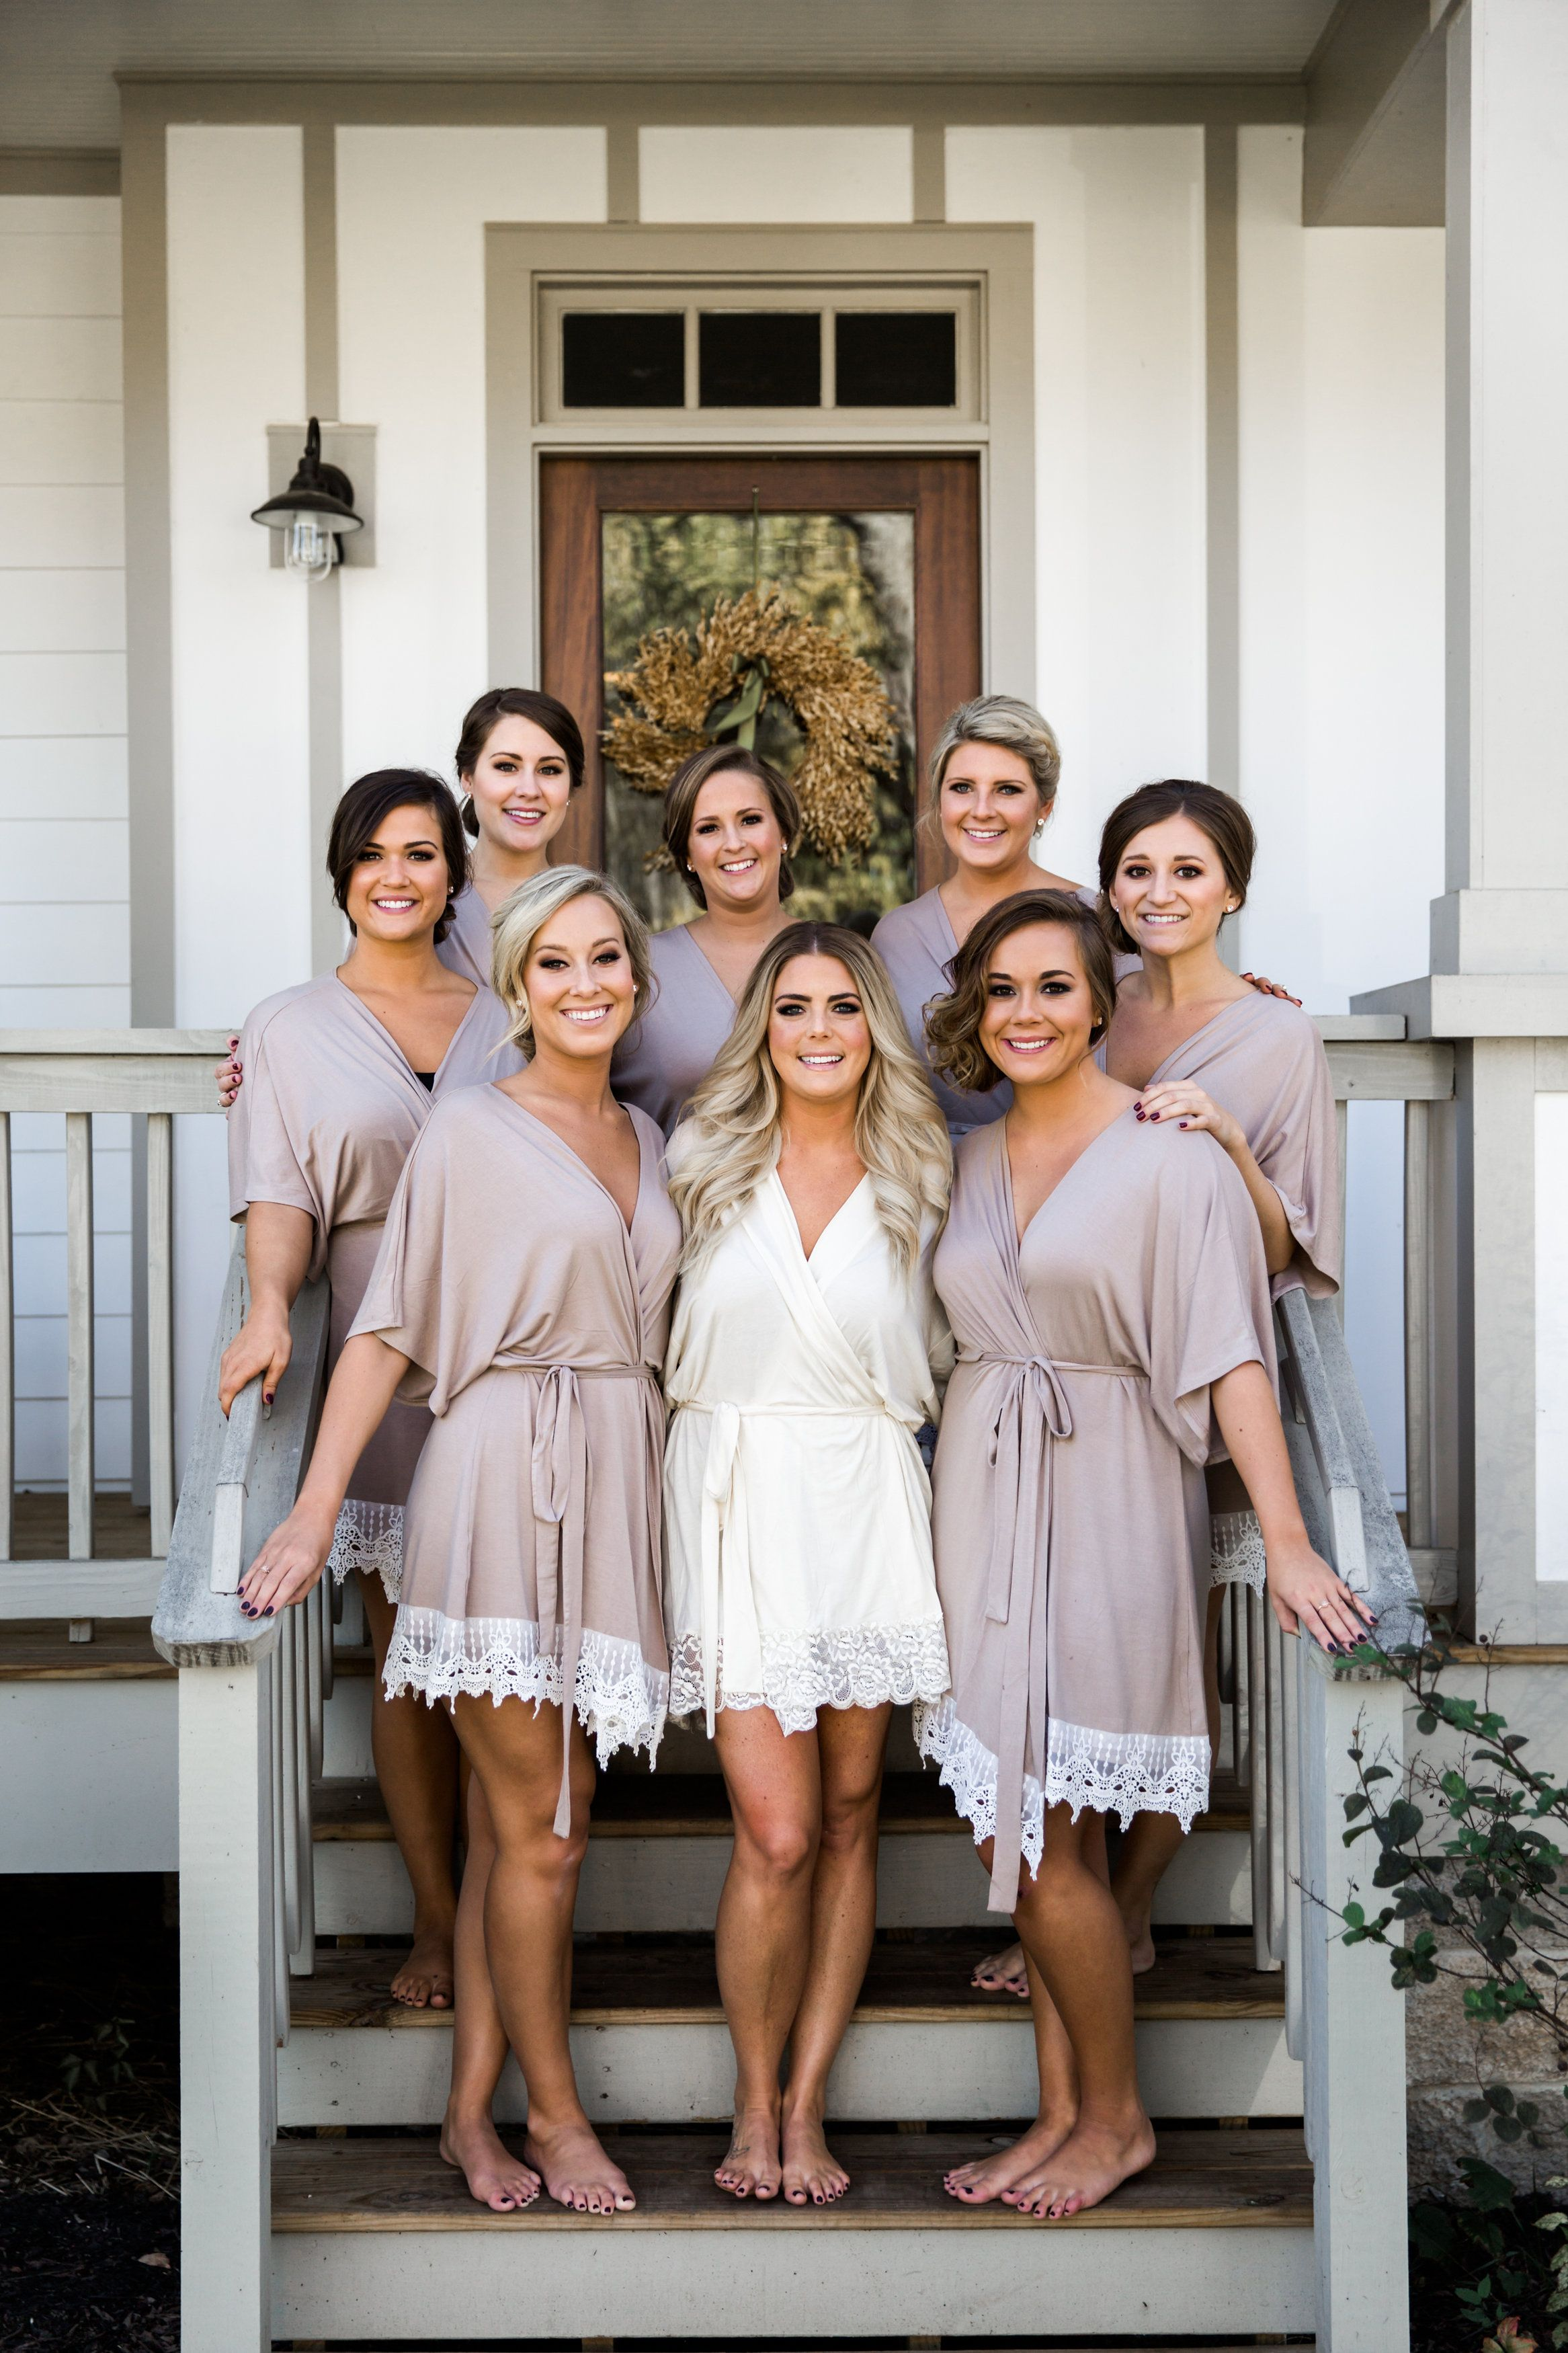 Bride and bridesmaids in matching robes getting ready for a Belle Meade  Plantation wedding in Nashville. Nyk + Cali Wedding Photography dcd335cec